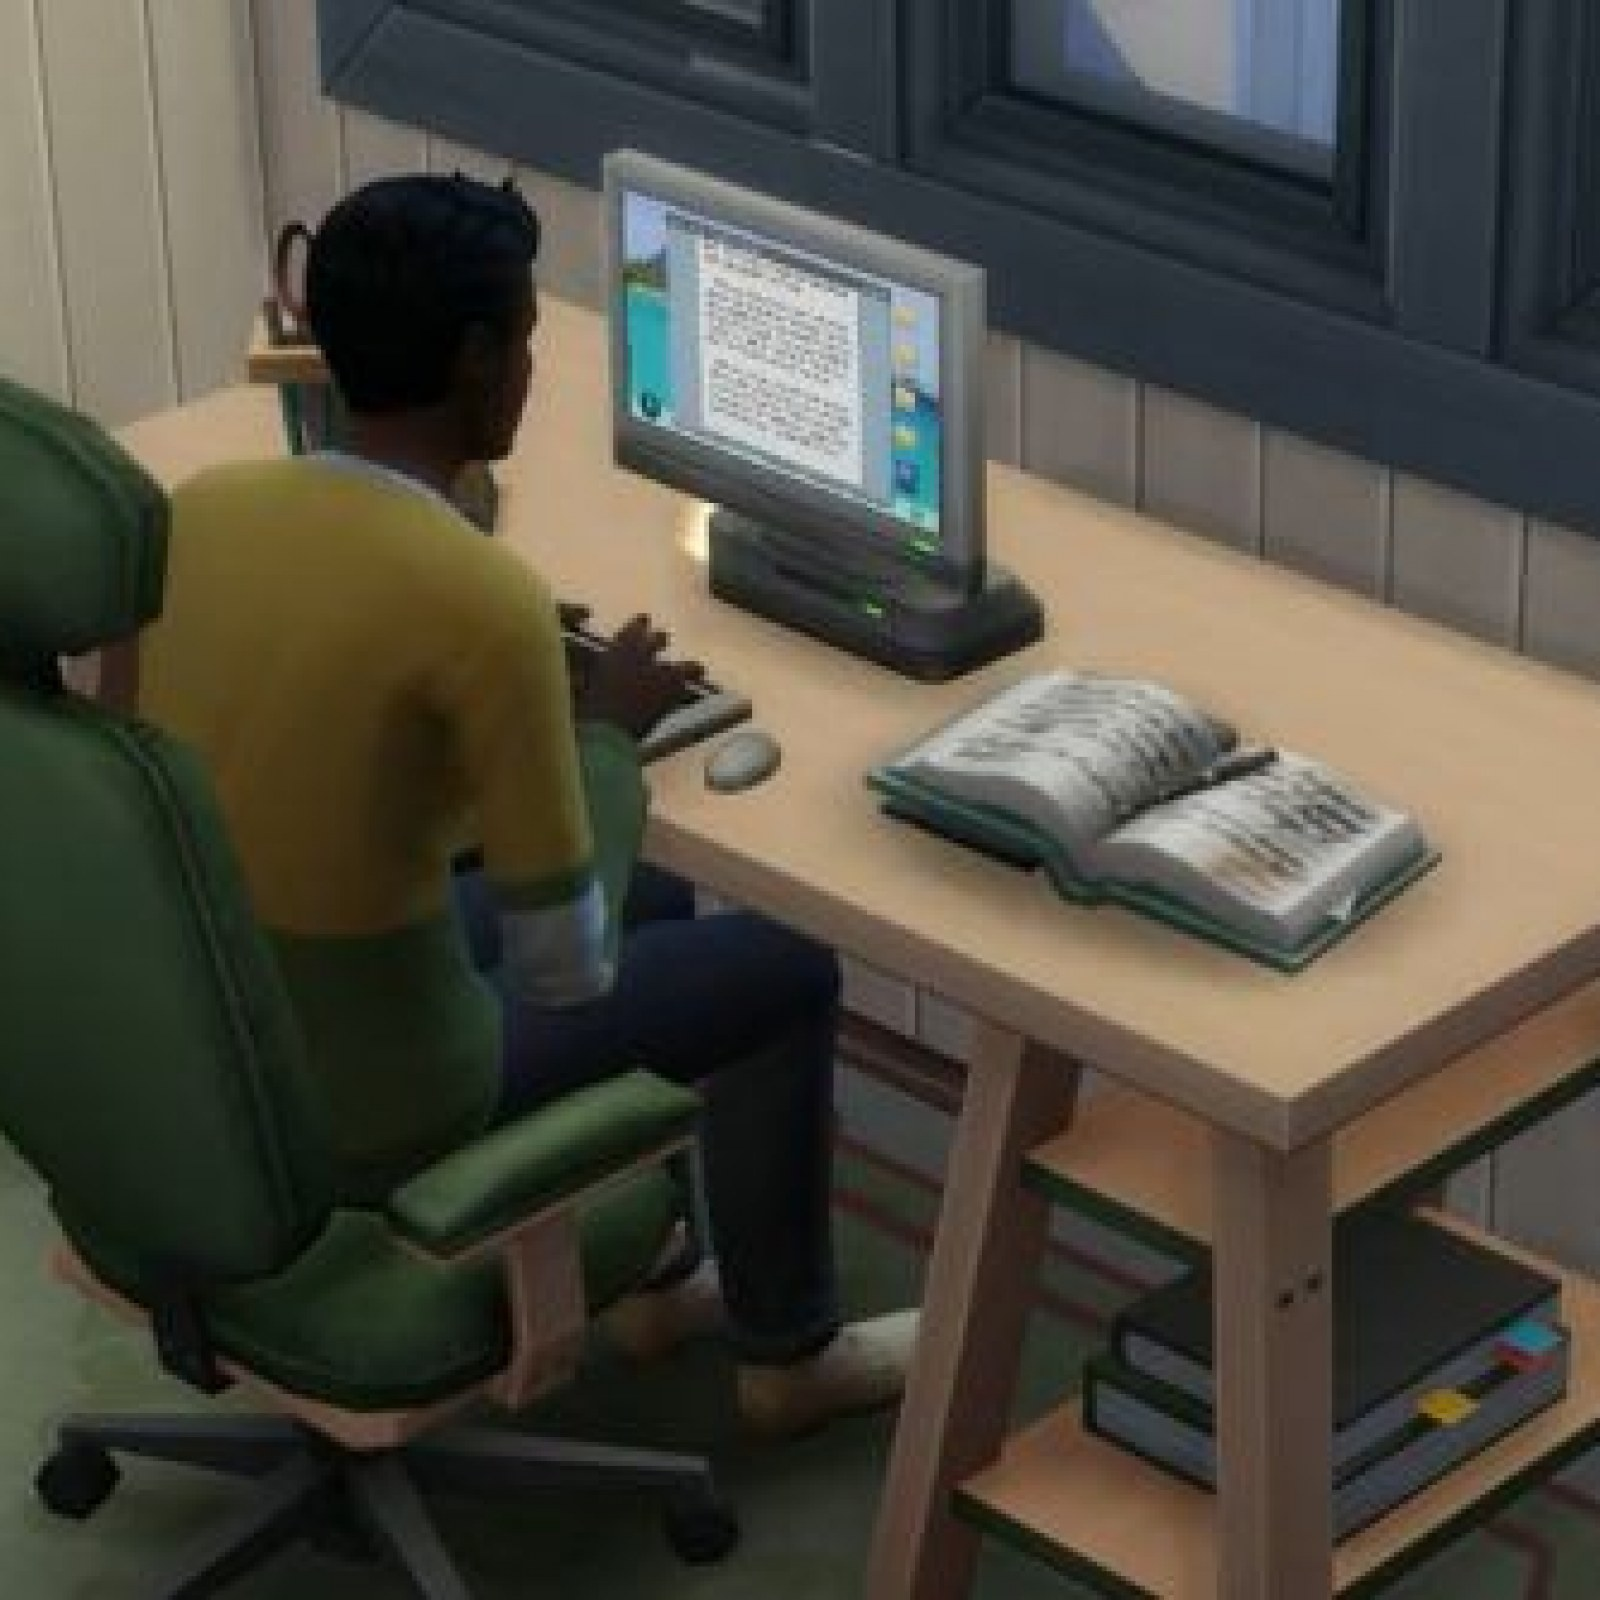 Sims 4' April 2019 Update: New Freelance Career, Clothing